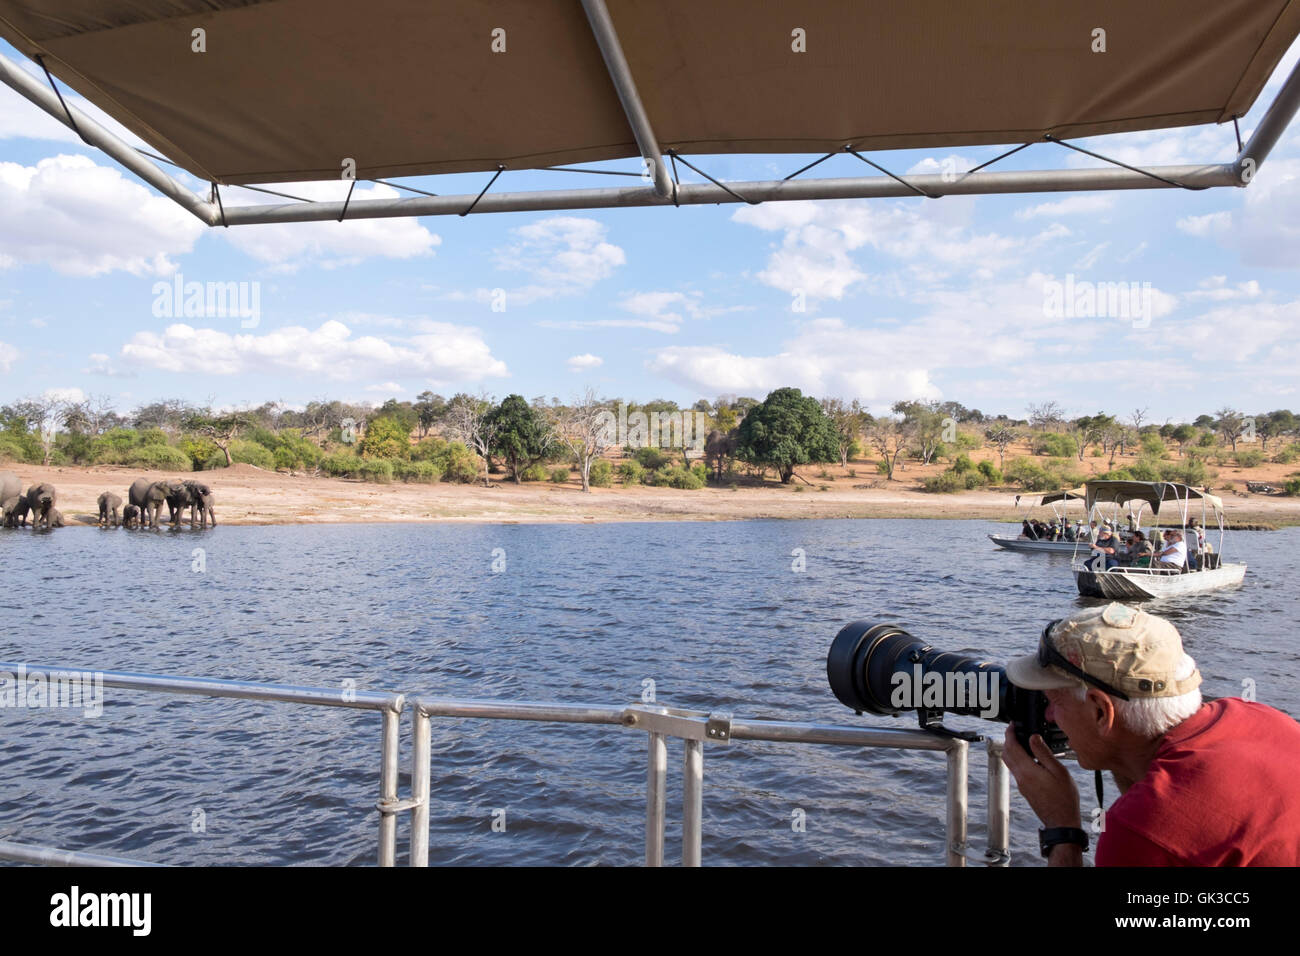 Photographer photographing a herd of African Elephants from a safari boat on the Chobe river Botswana Africa - Stock Image